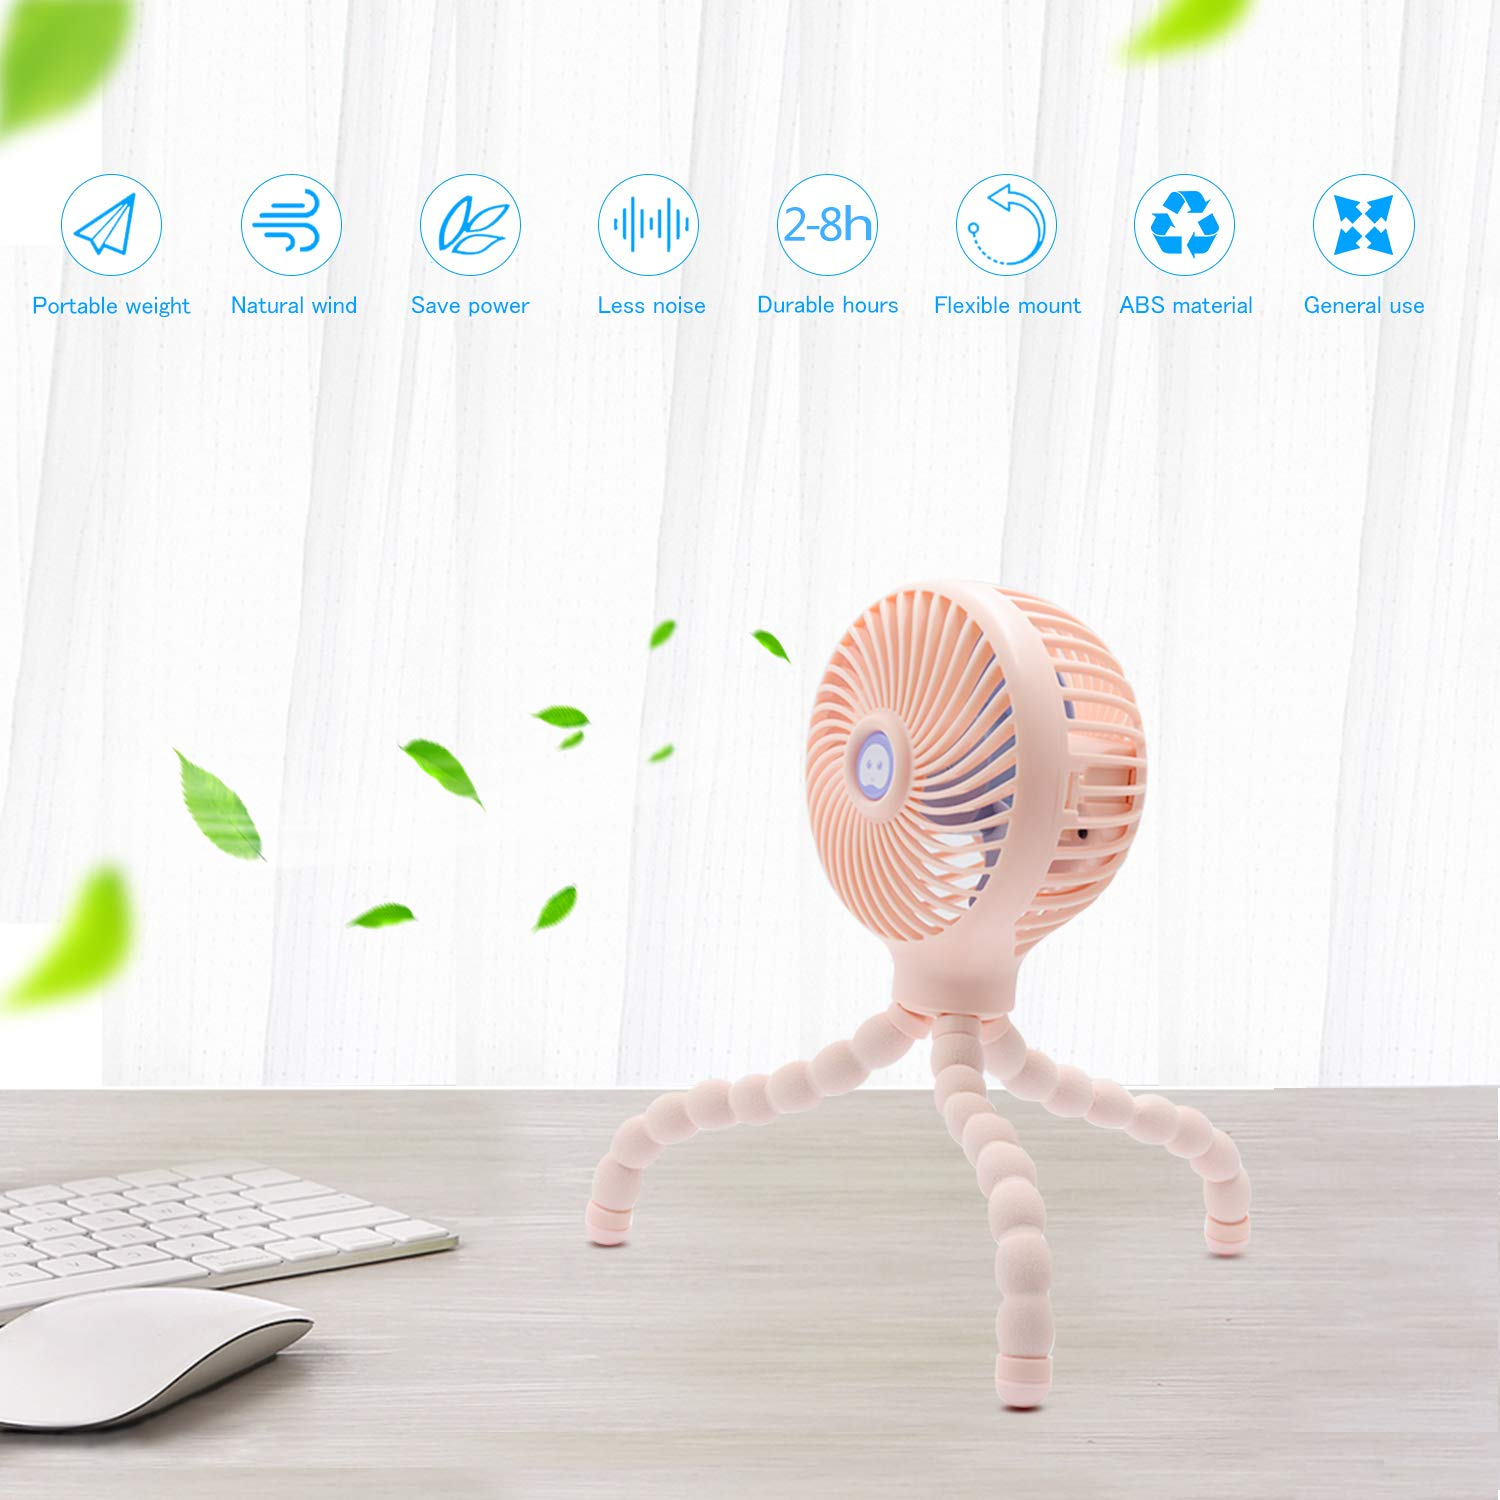 Pink Mini Handheld Stroller Fan Rechargeable Fan for Office Room Car Traveling BBQ Gym Fan with 3 Settings Gift for Children TRELC Personal Portable Baby Fan with Flexible Tripod